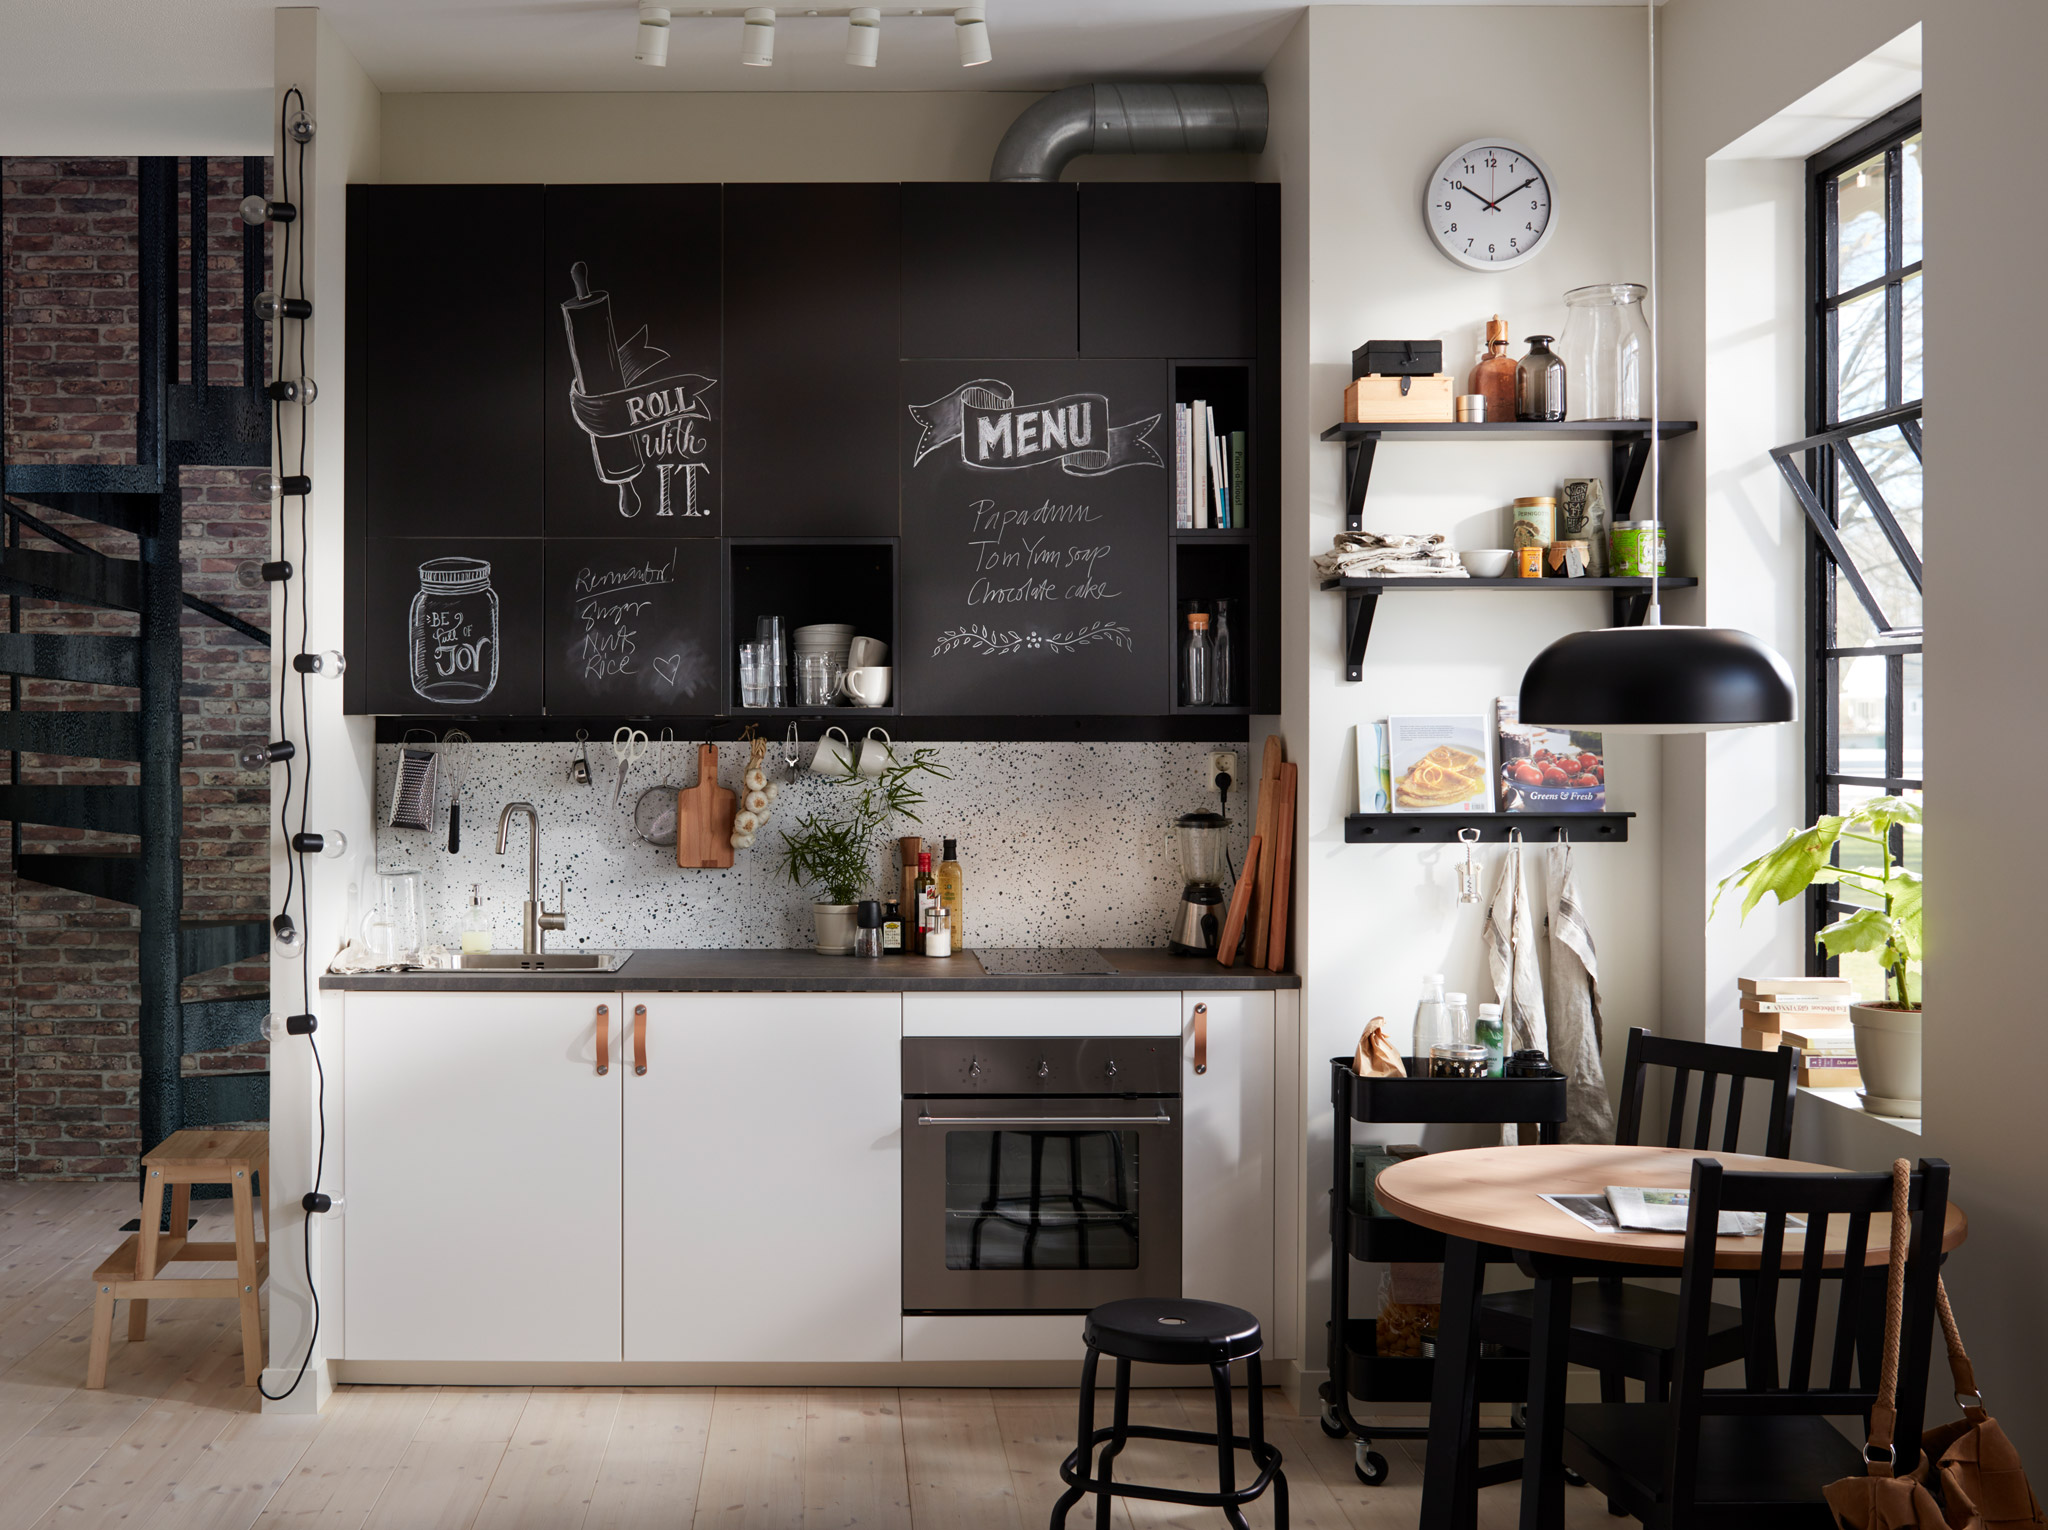 Le Meilleur The 2018 Ikea Catalog Means New And Discontinued Kitchen Ce Mois Ci